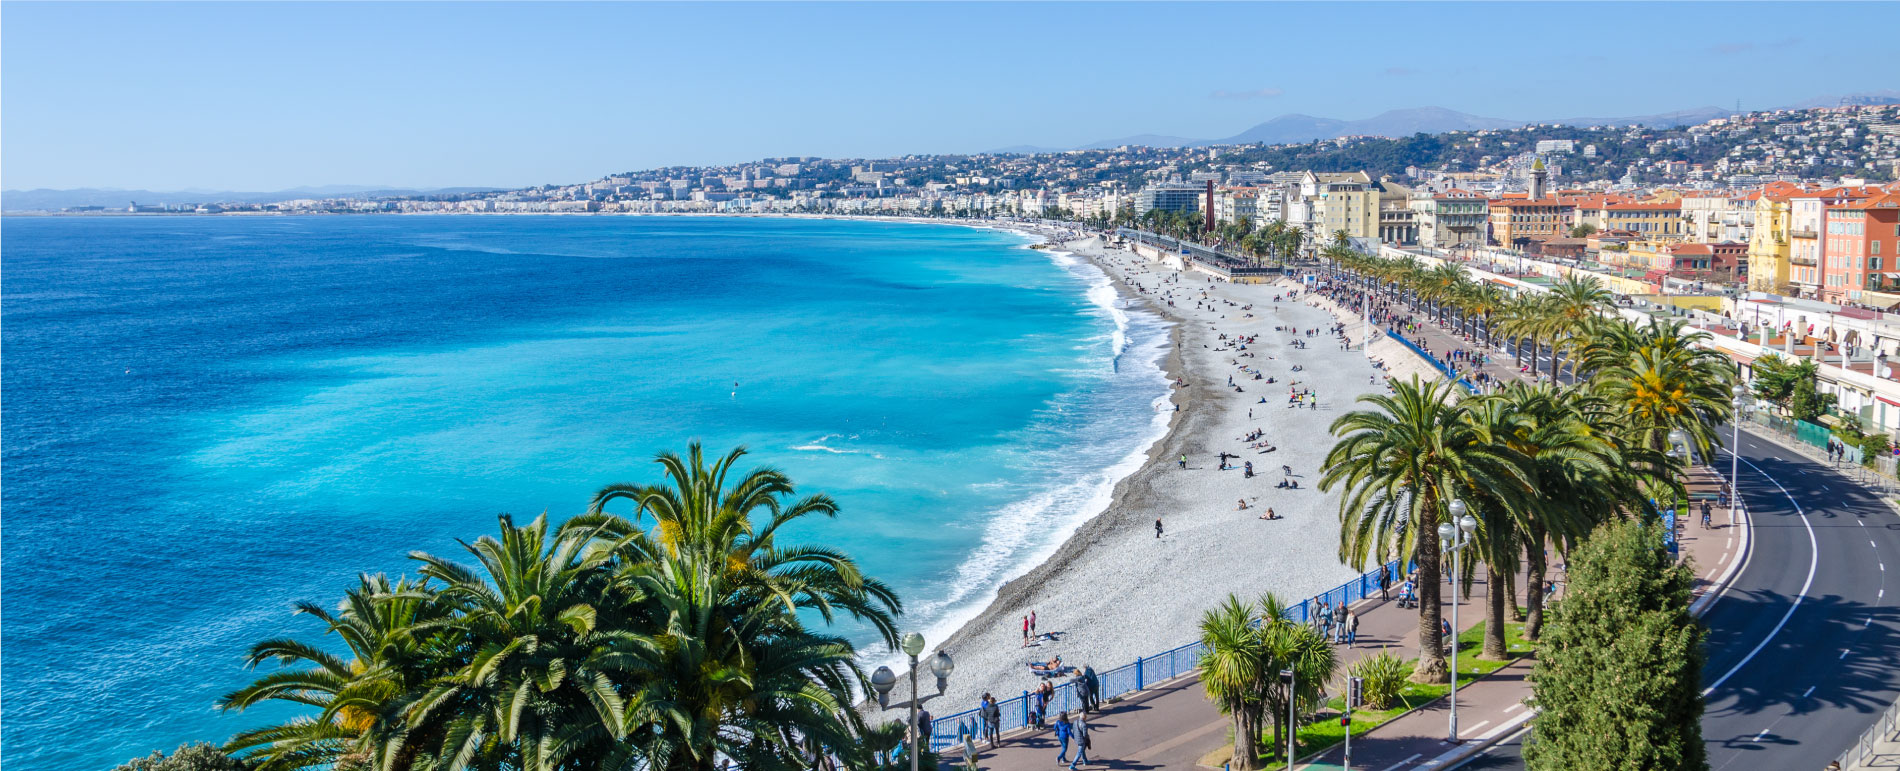 visit-the-south-of-france-1